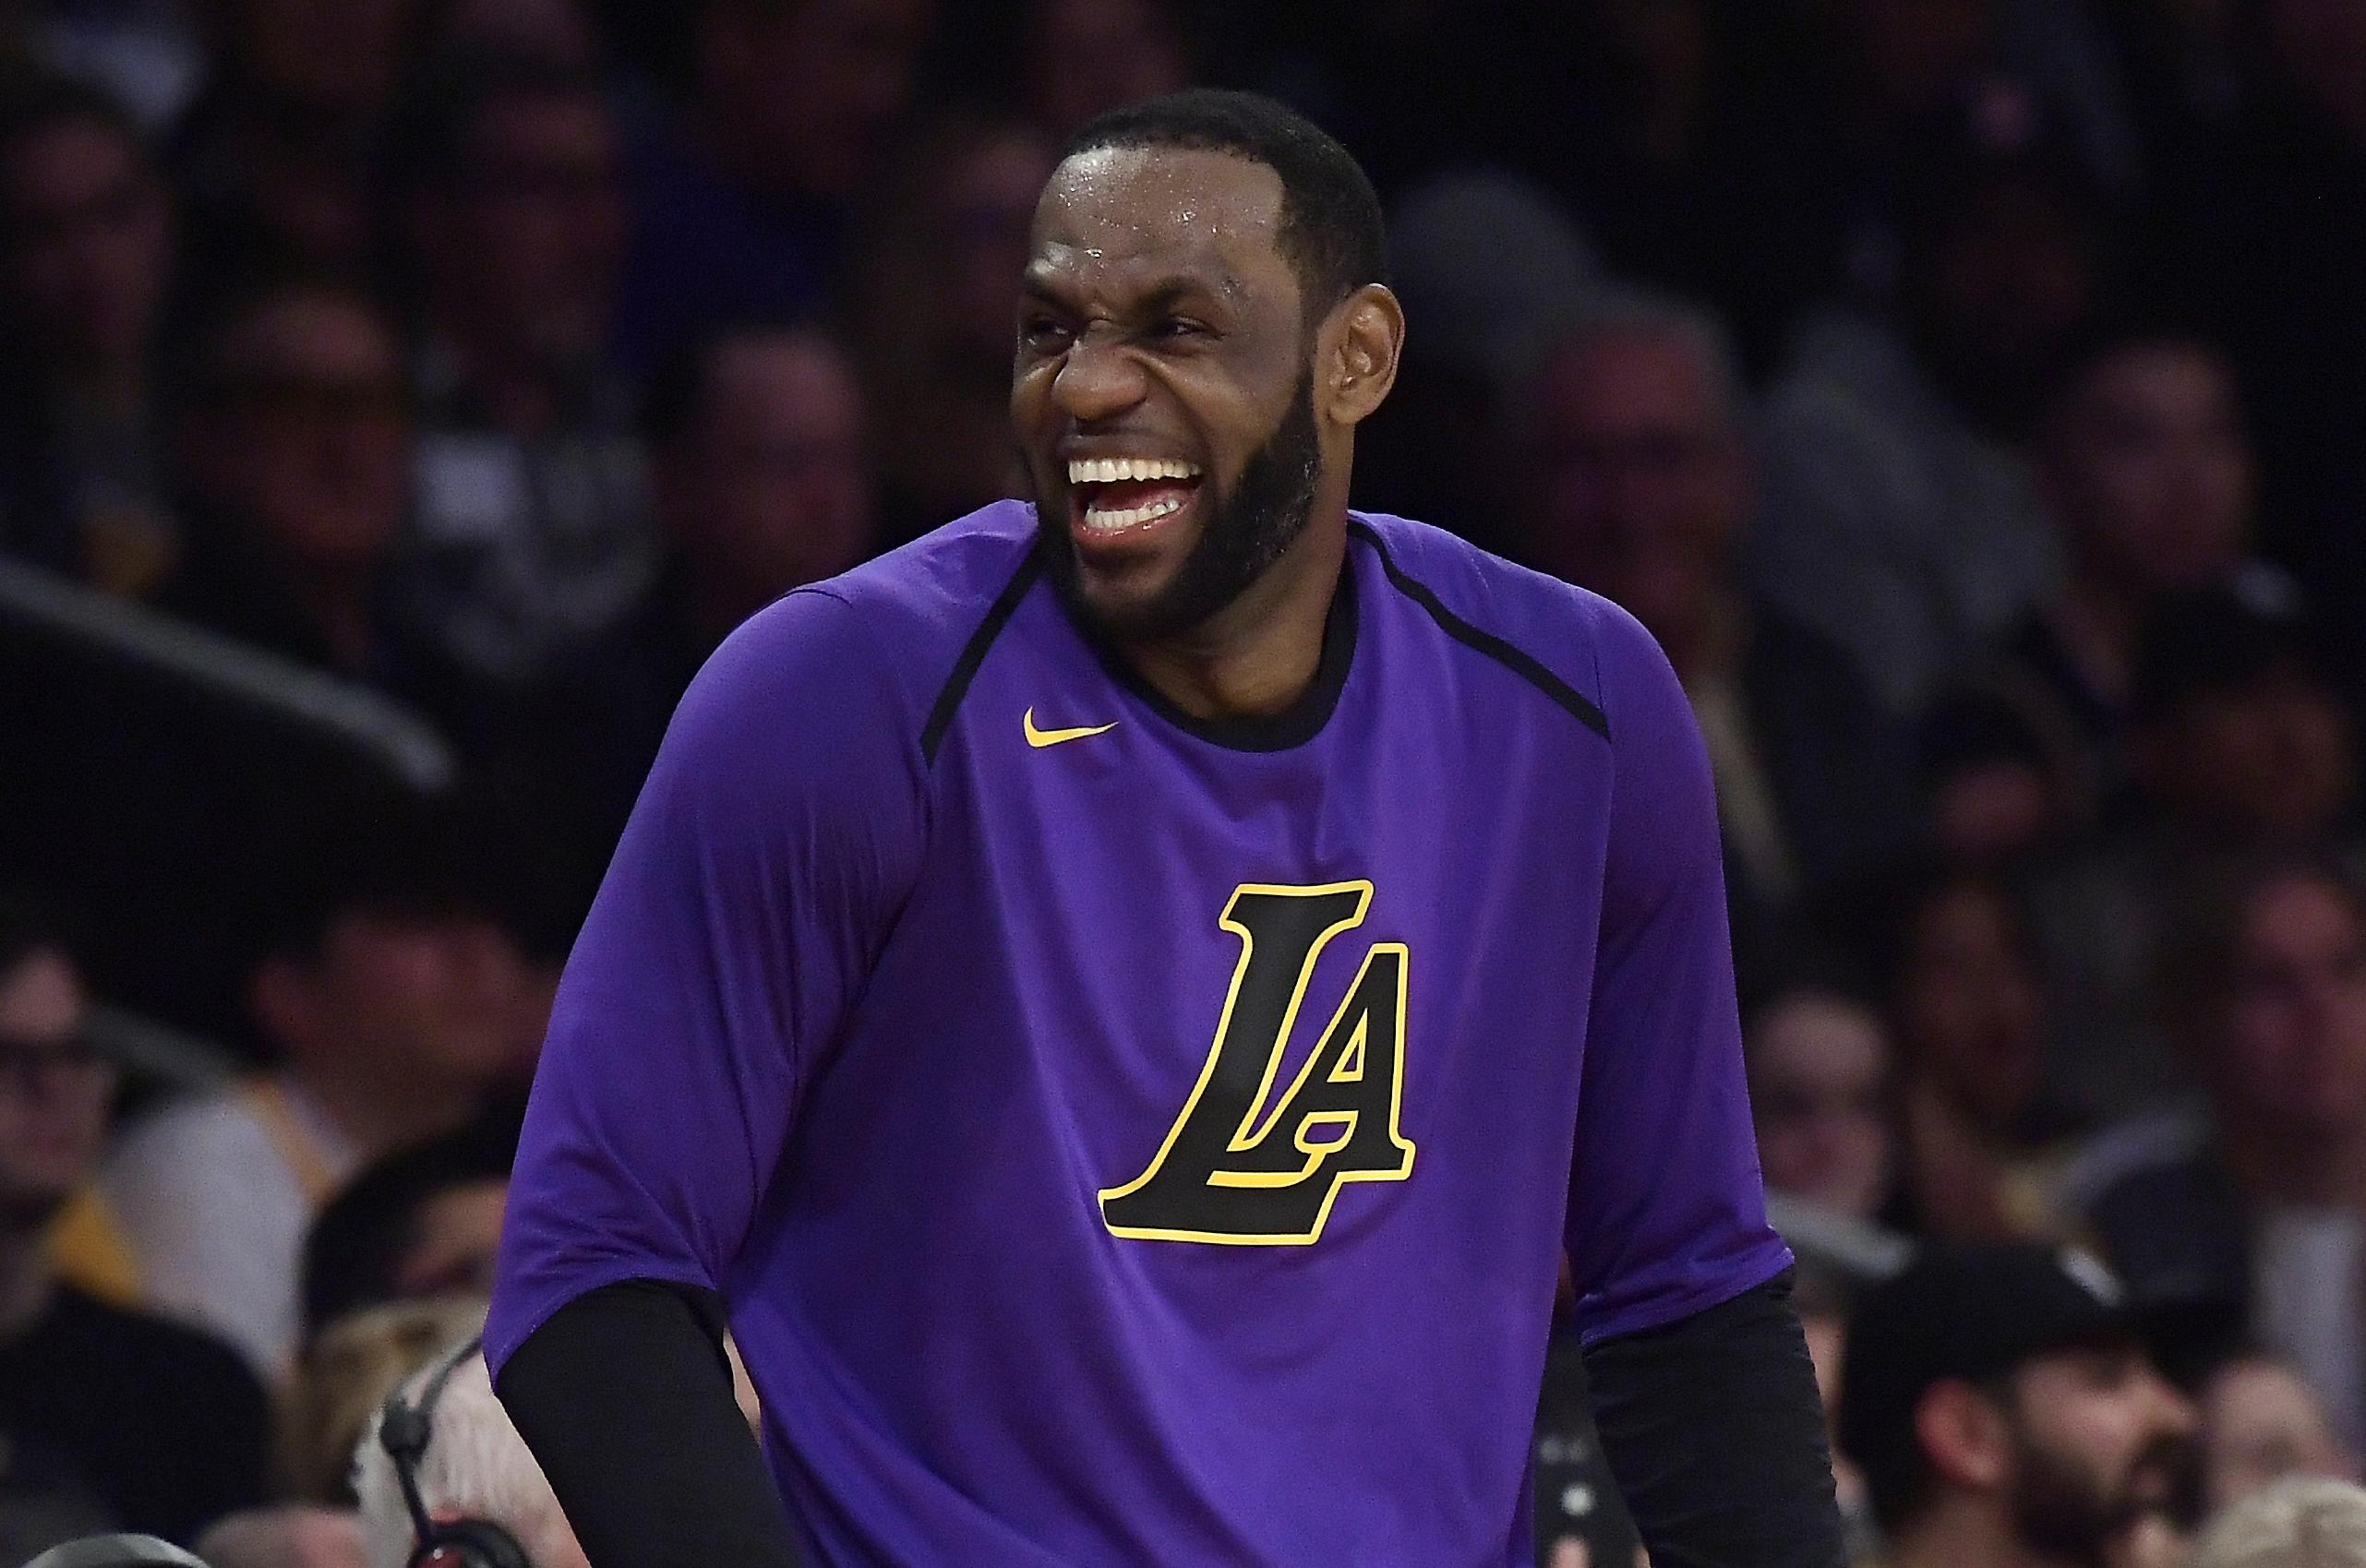 d45f6b282f6f Los Angeles Lakers forward LeBron James will fail to make the NBA Finals  for the first